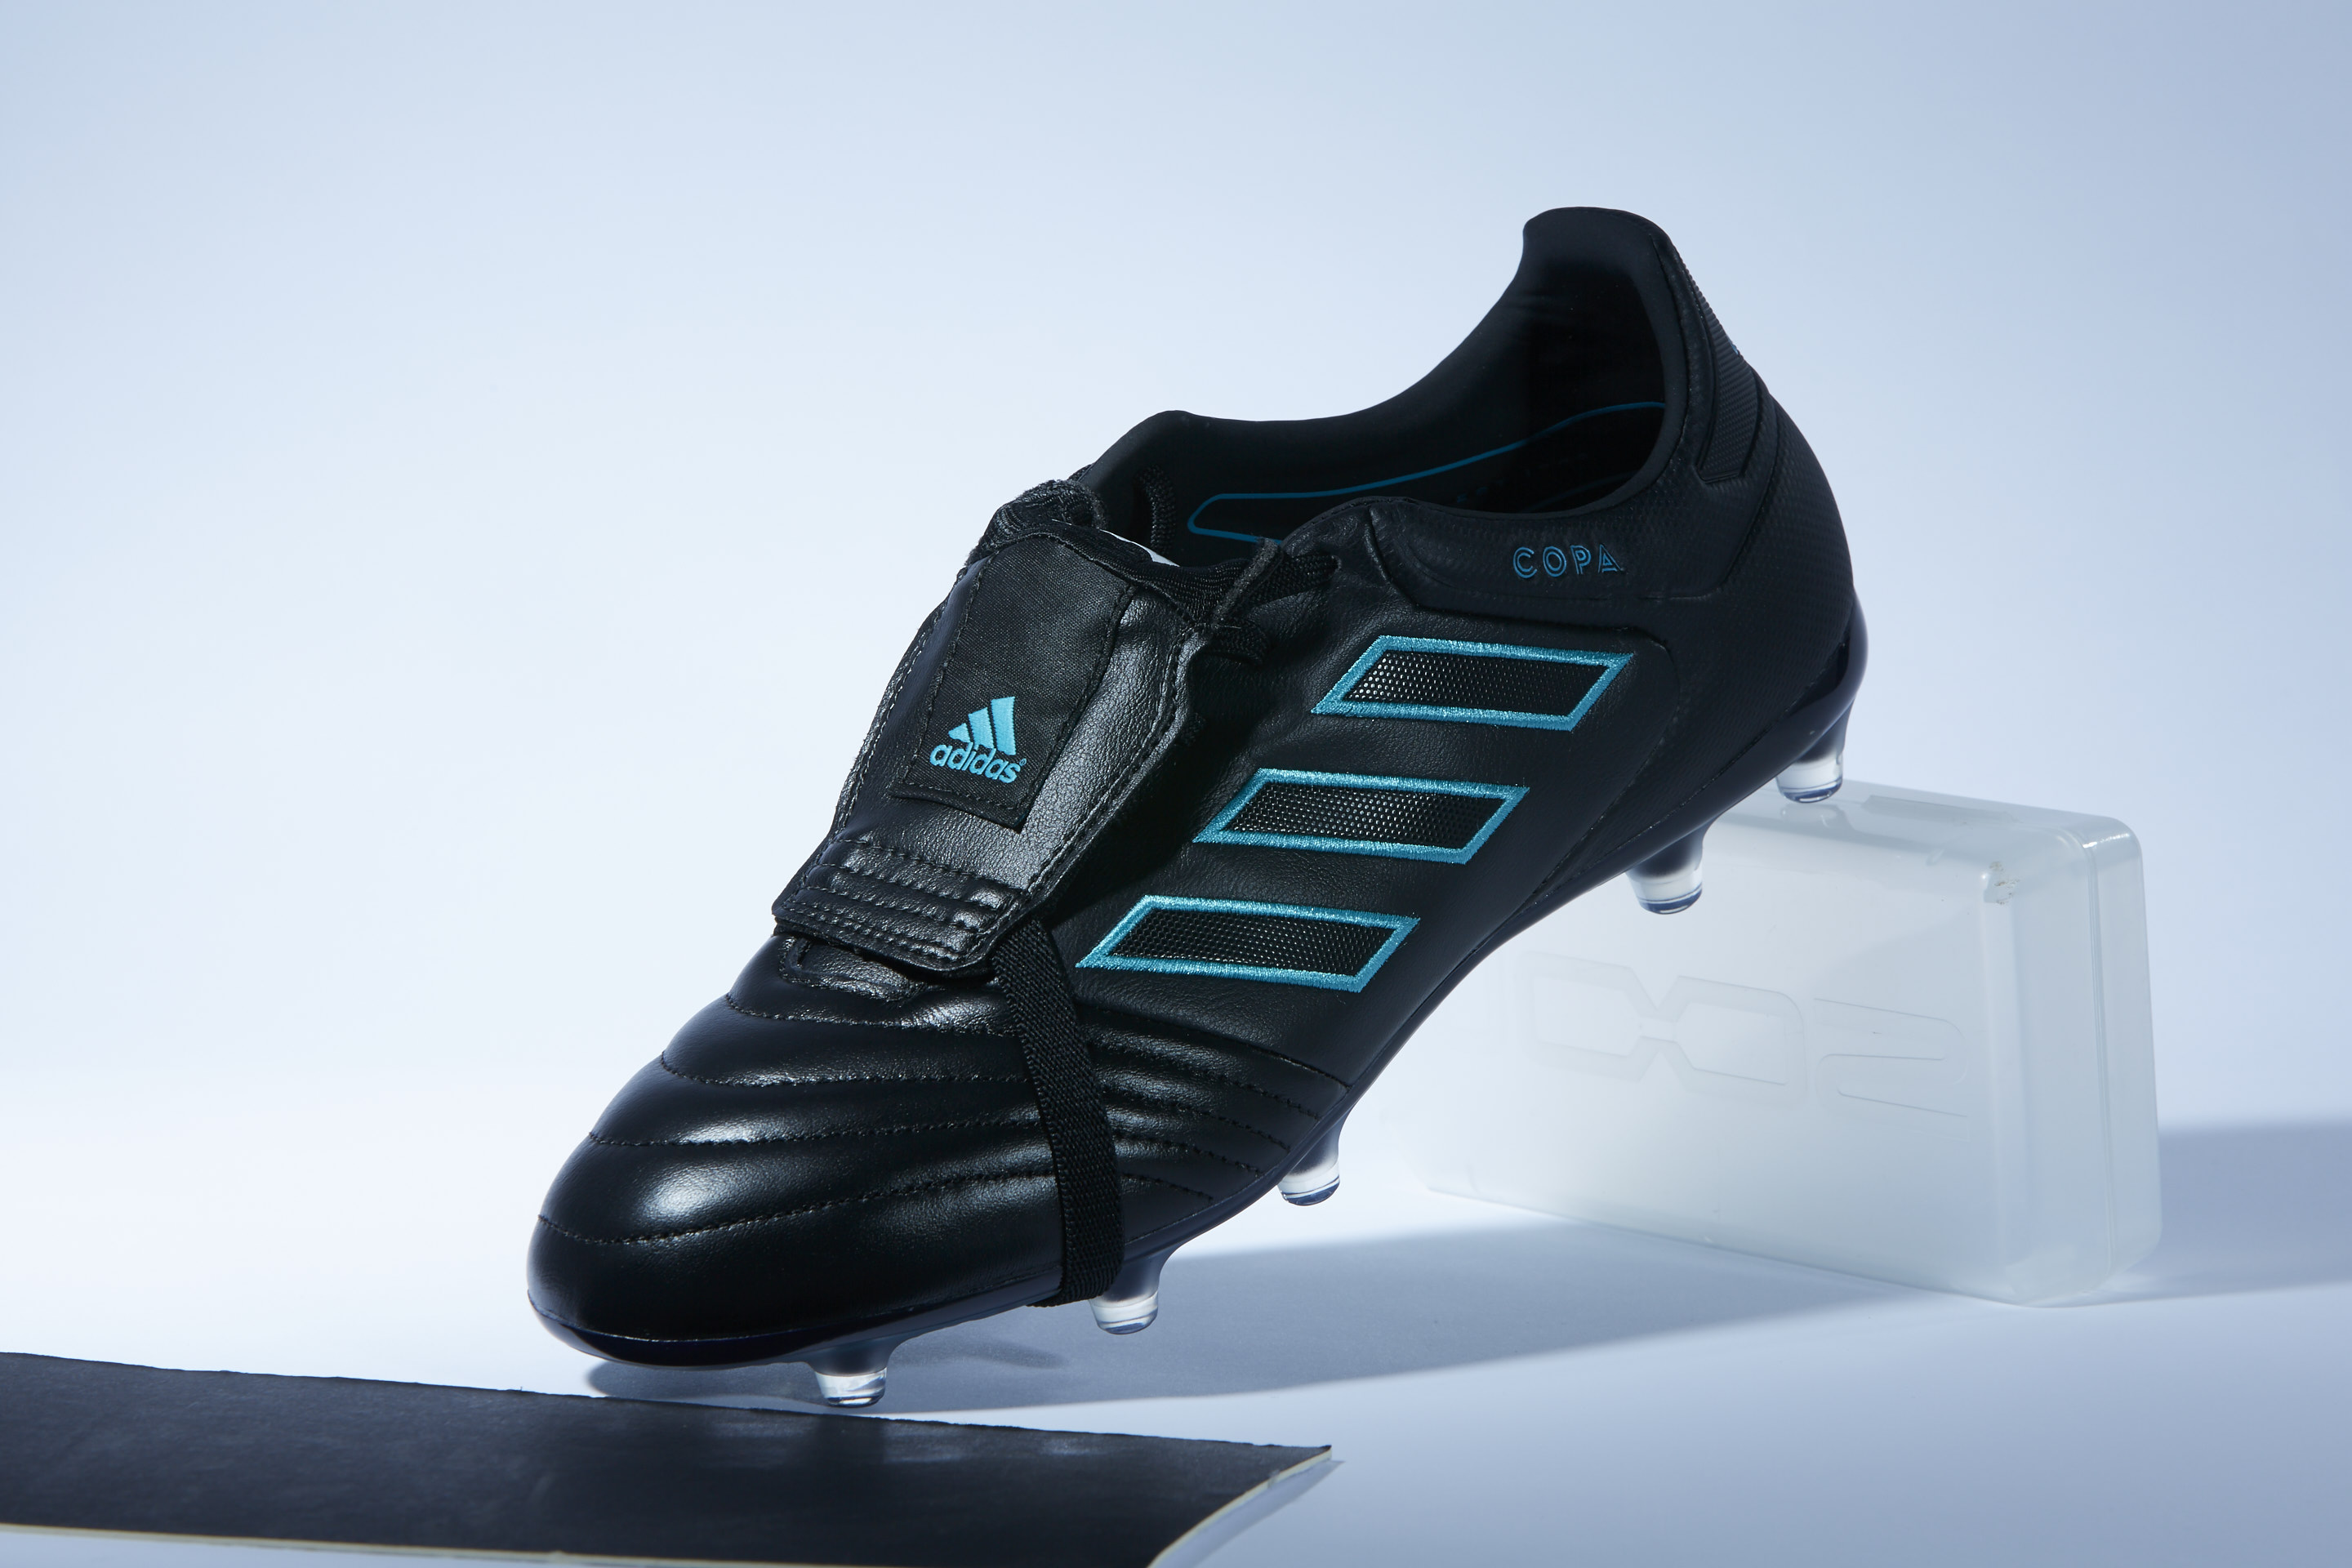 Introducing the EXCLUSIVE adidas Copa Gloro 17.2 Football Boots